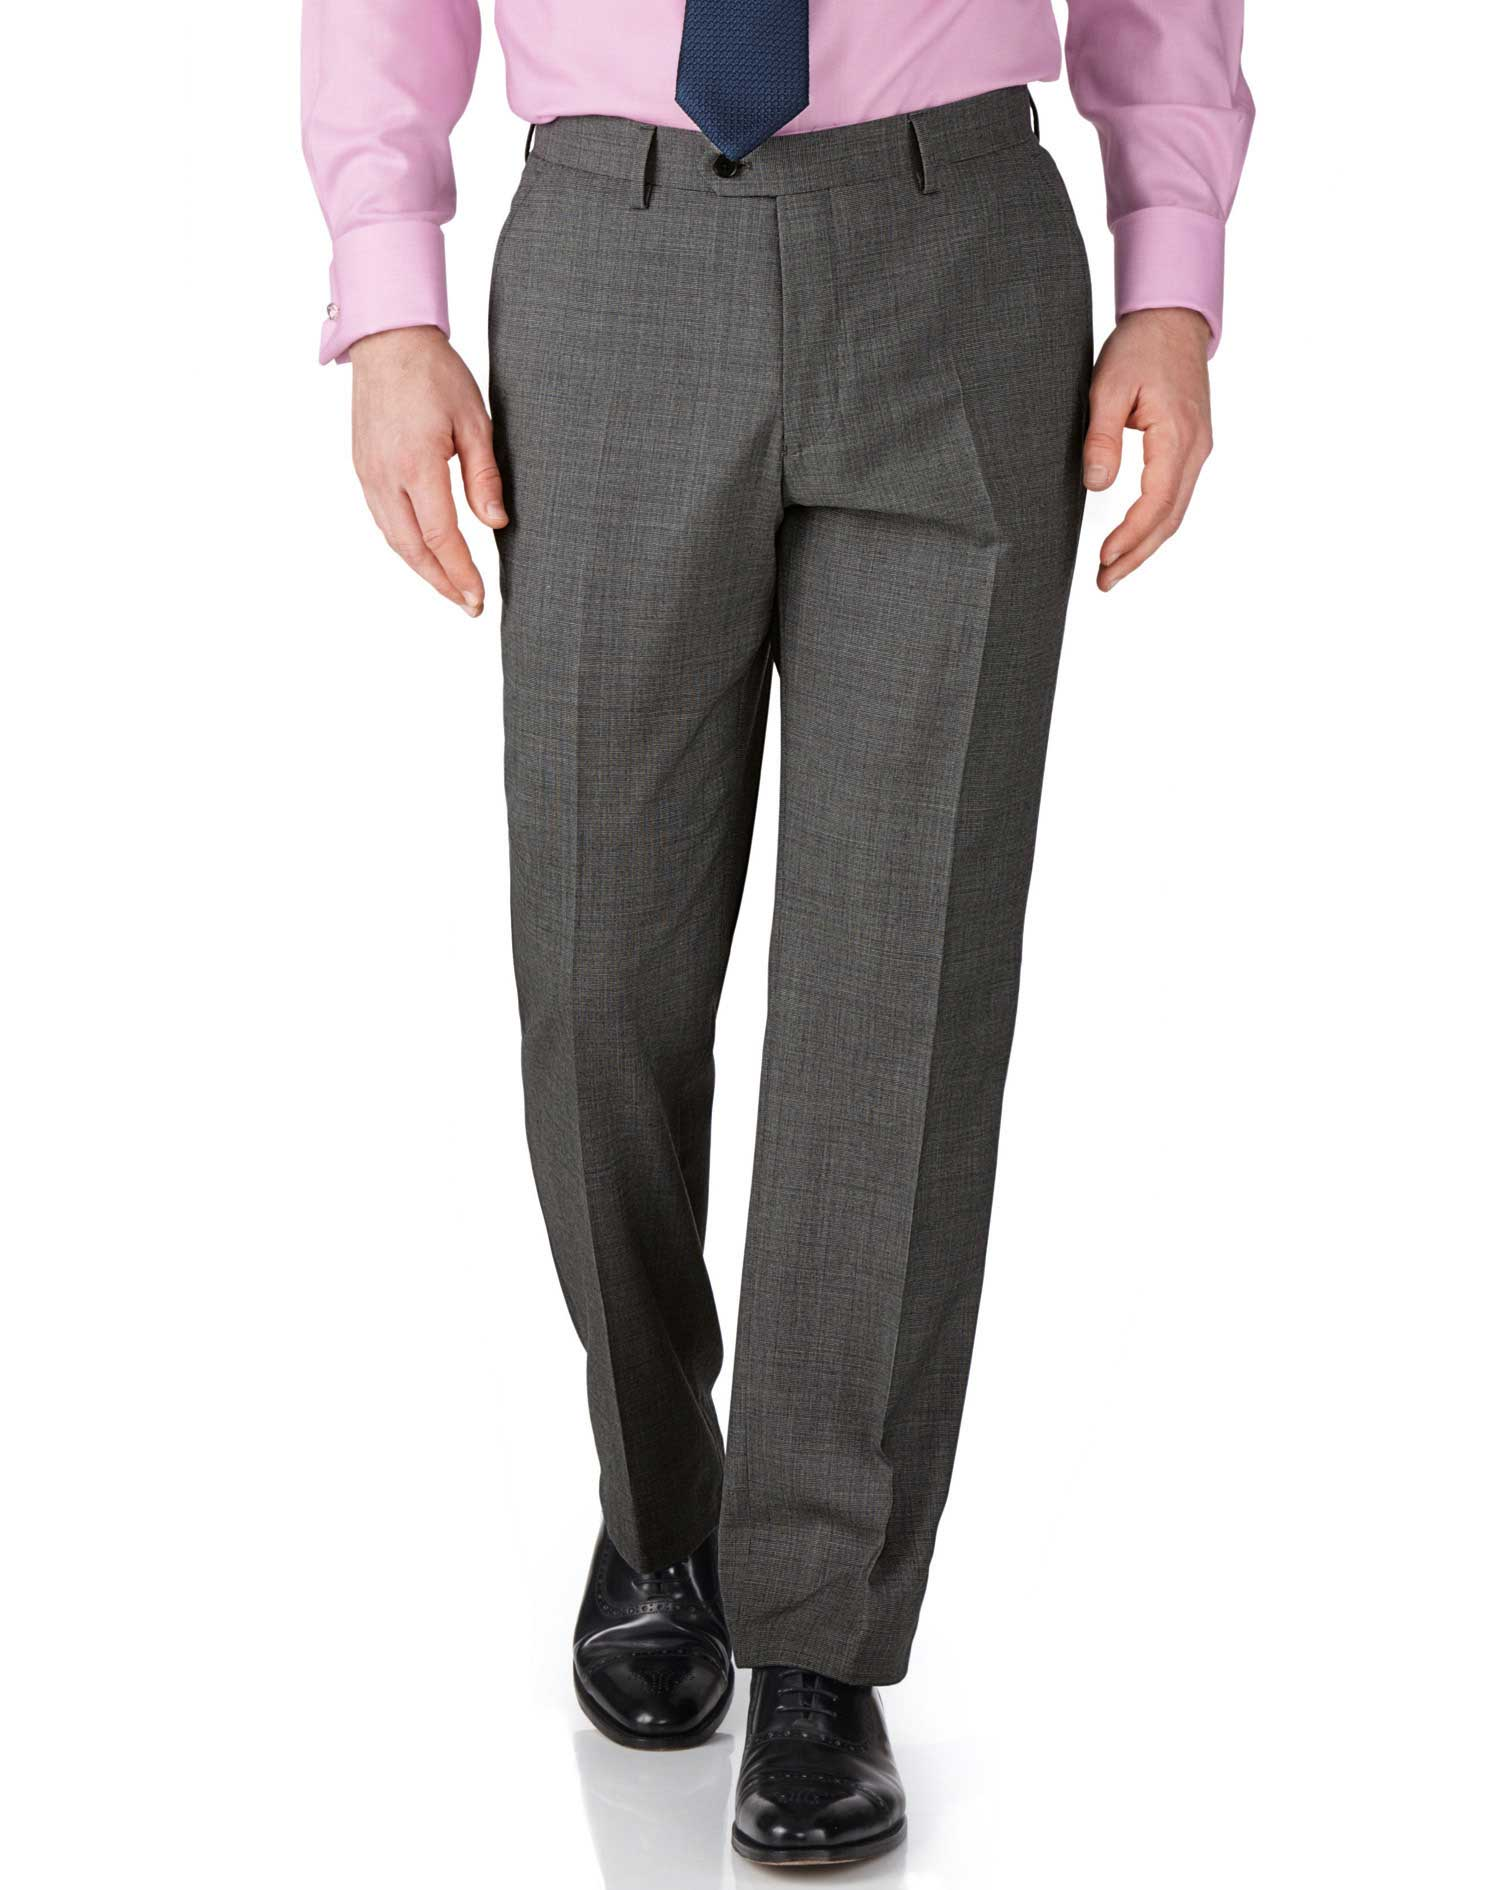 Grey Slim Fit End-On-End Business Suit Trousers Size W42 L38 by Charles Tyrwhitt